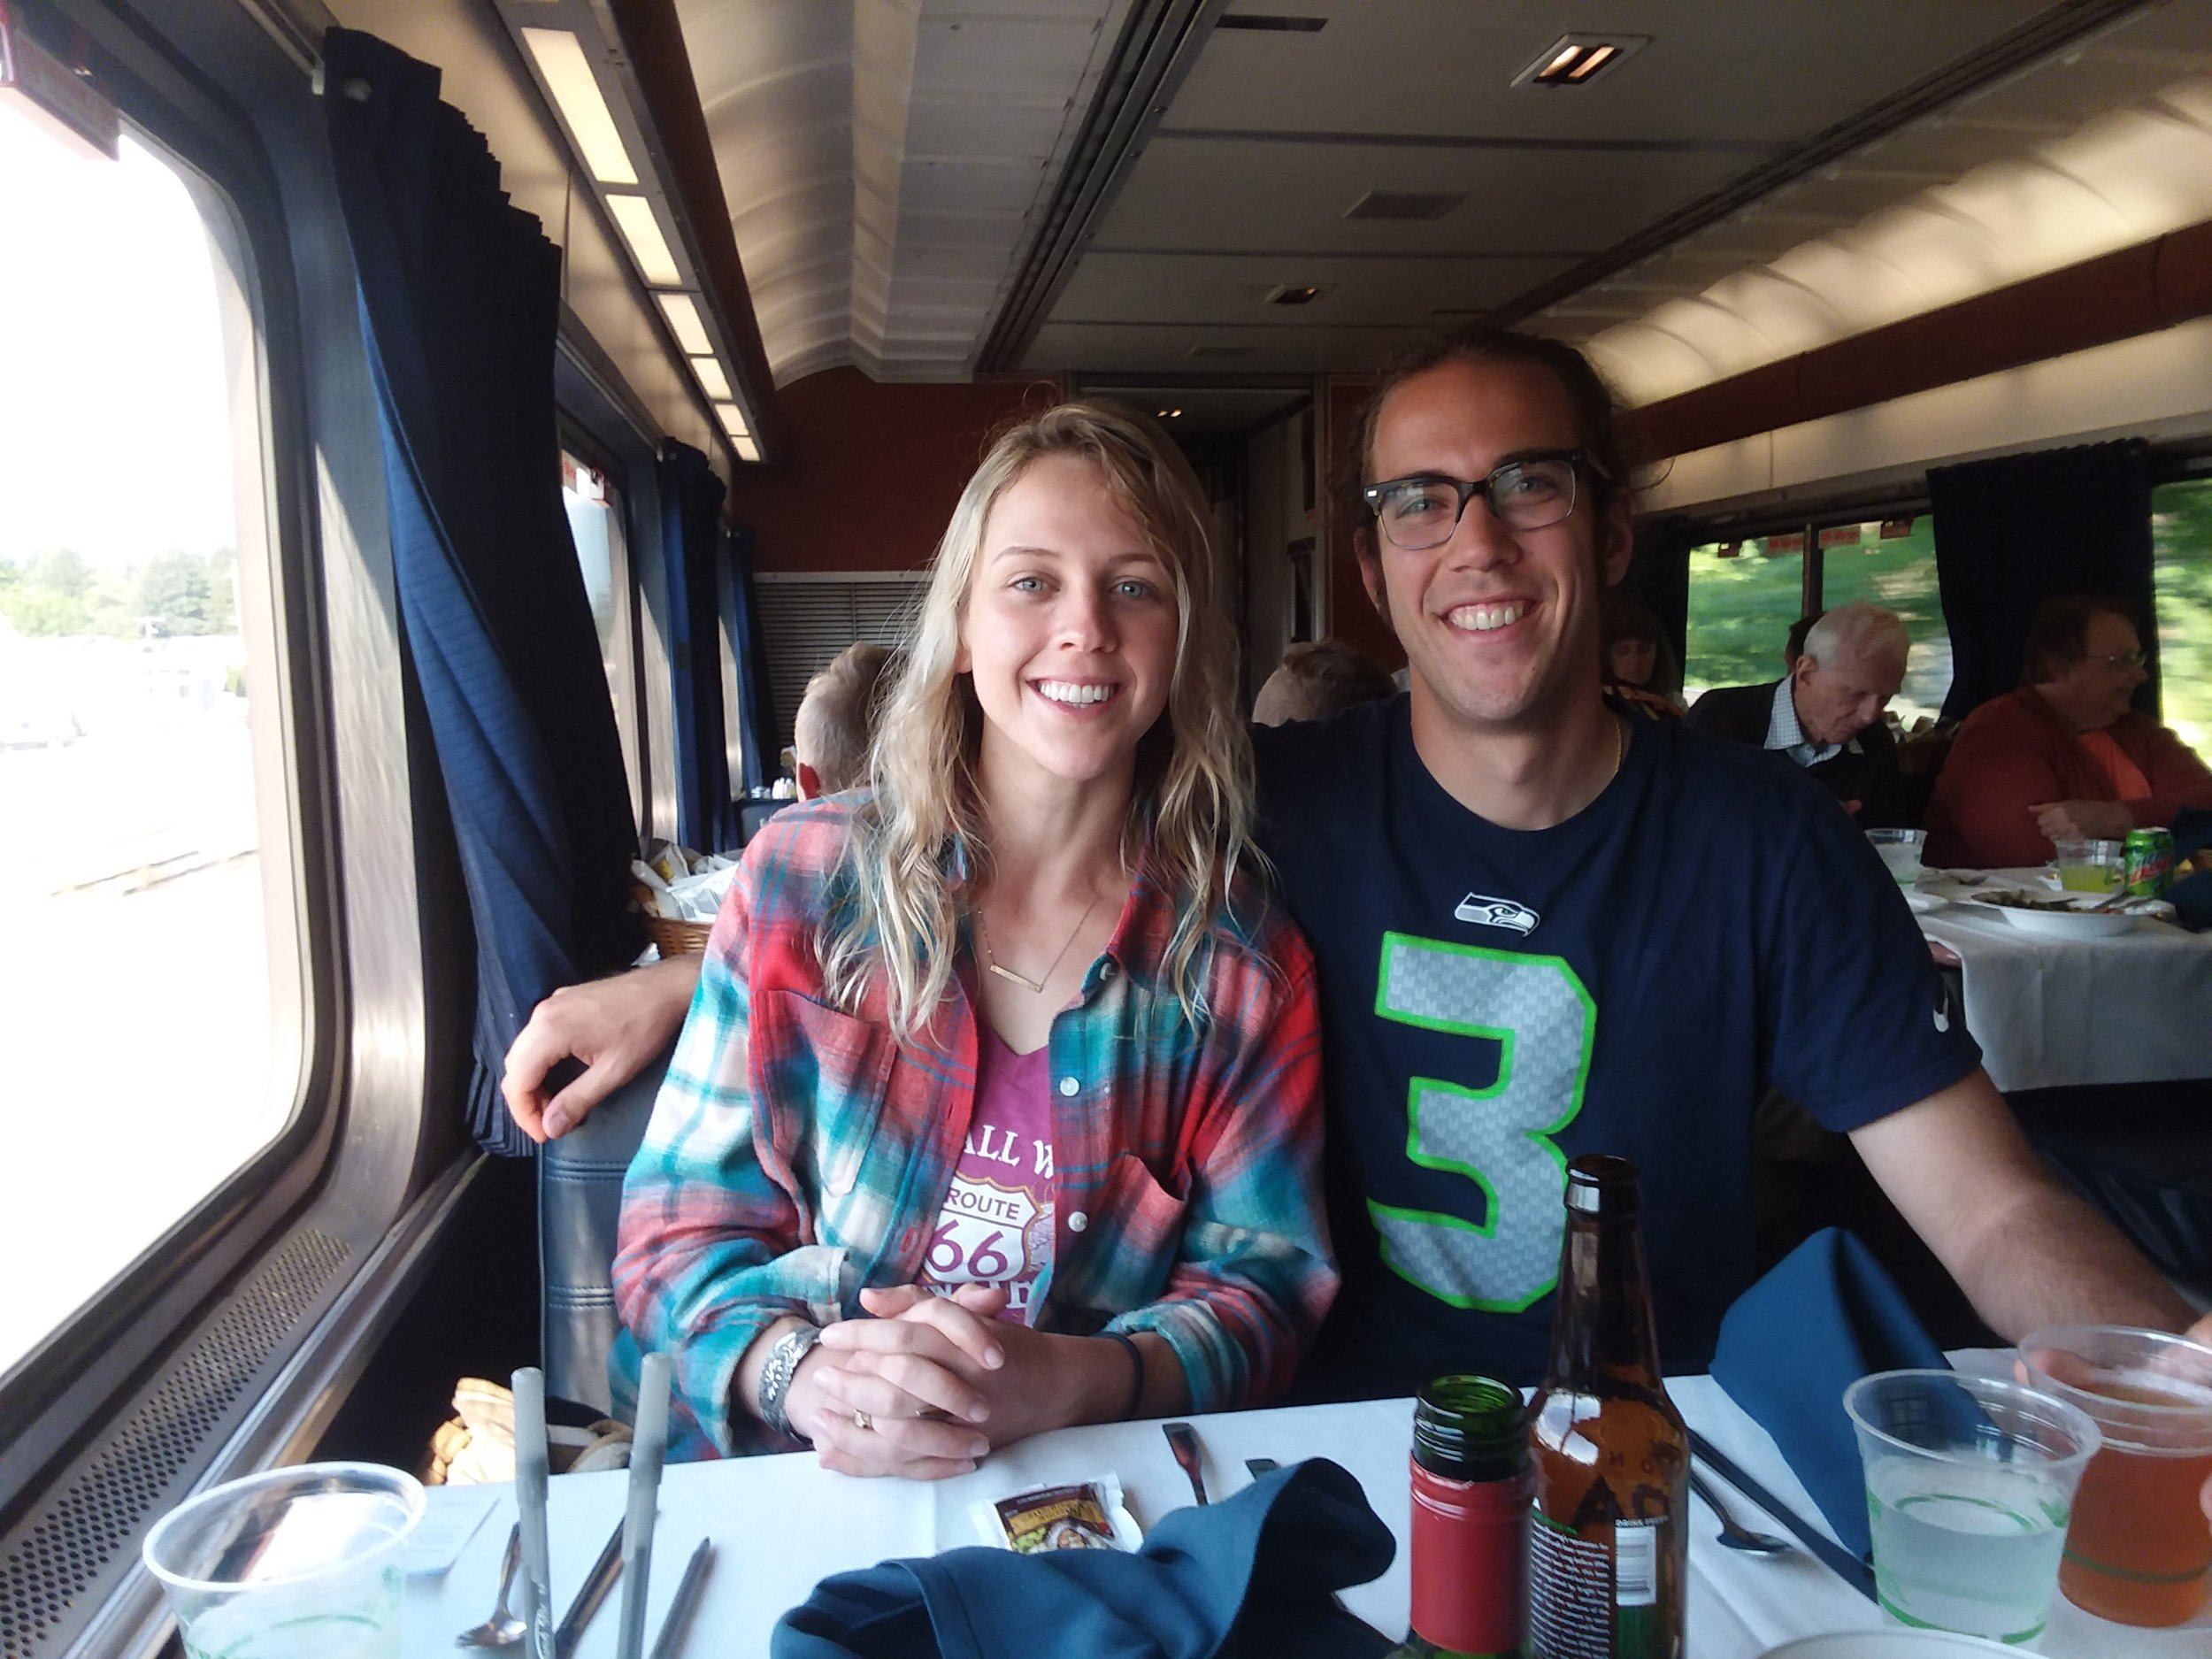 Molly and TJ, fellow rail riders